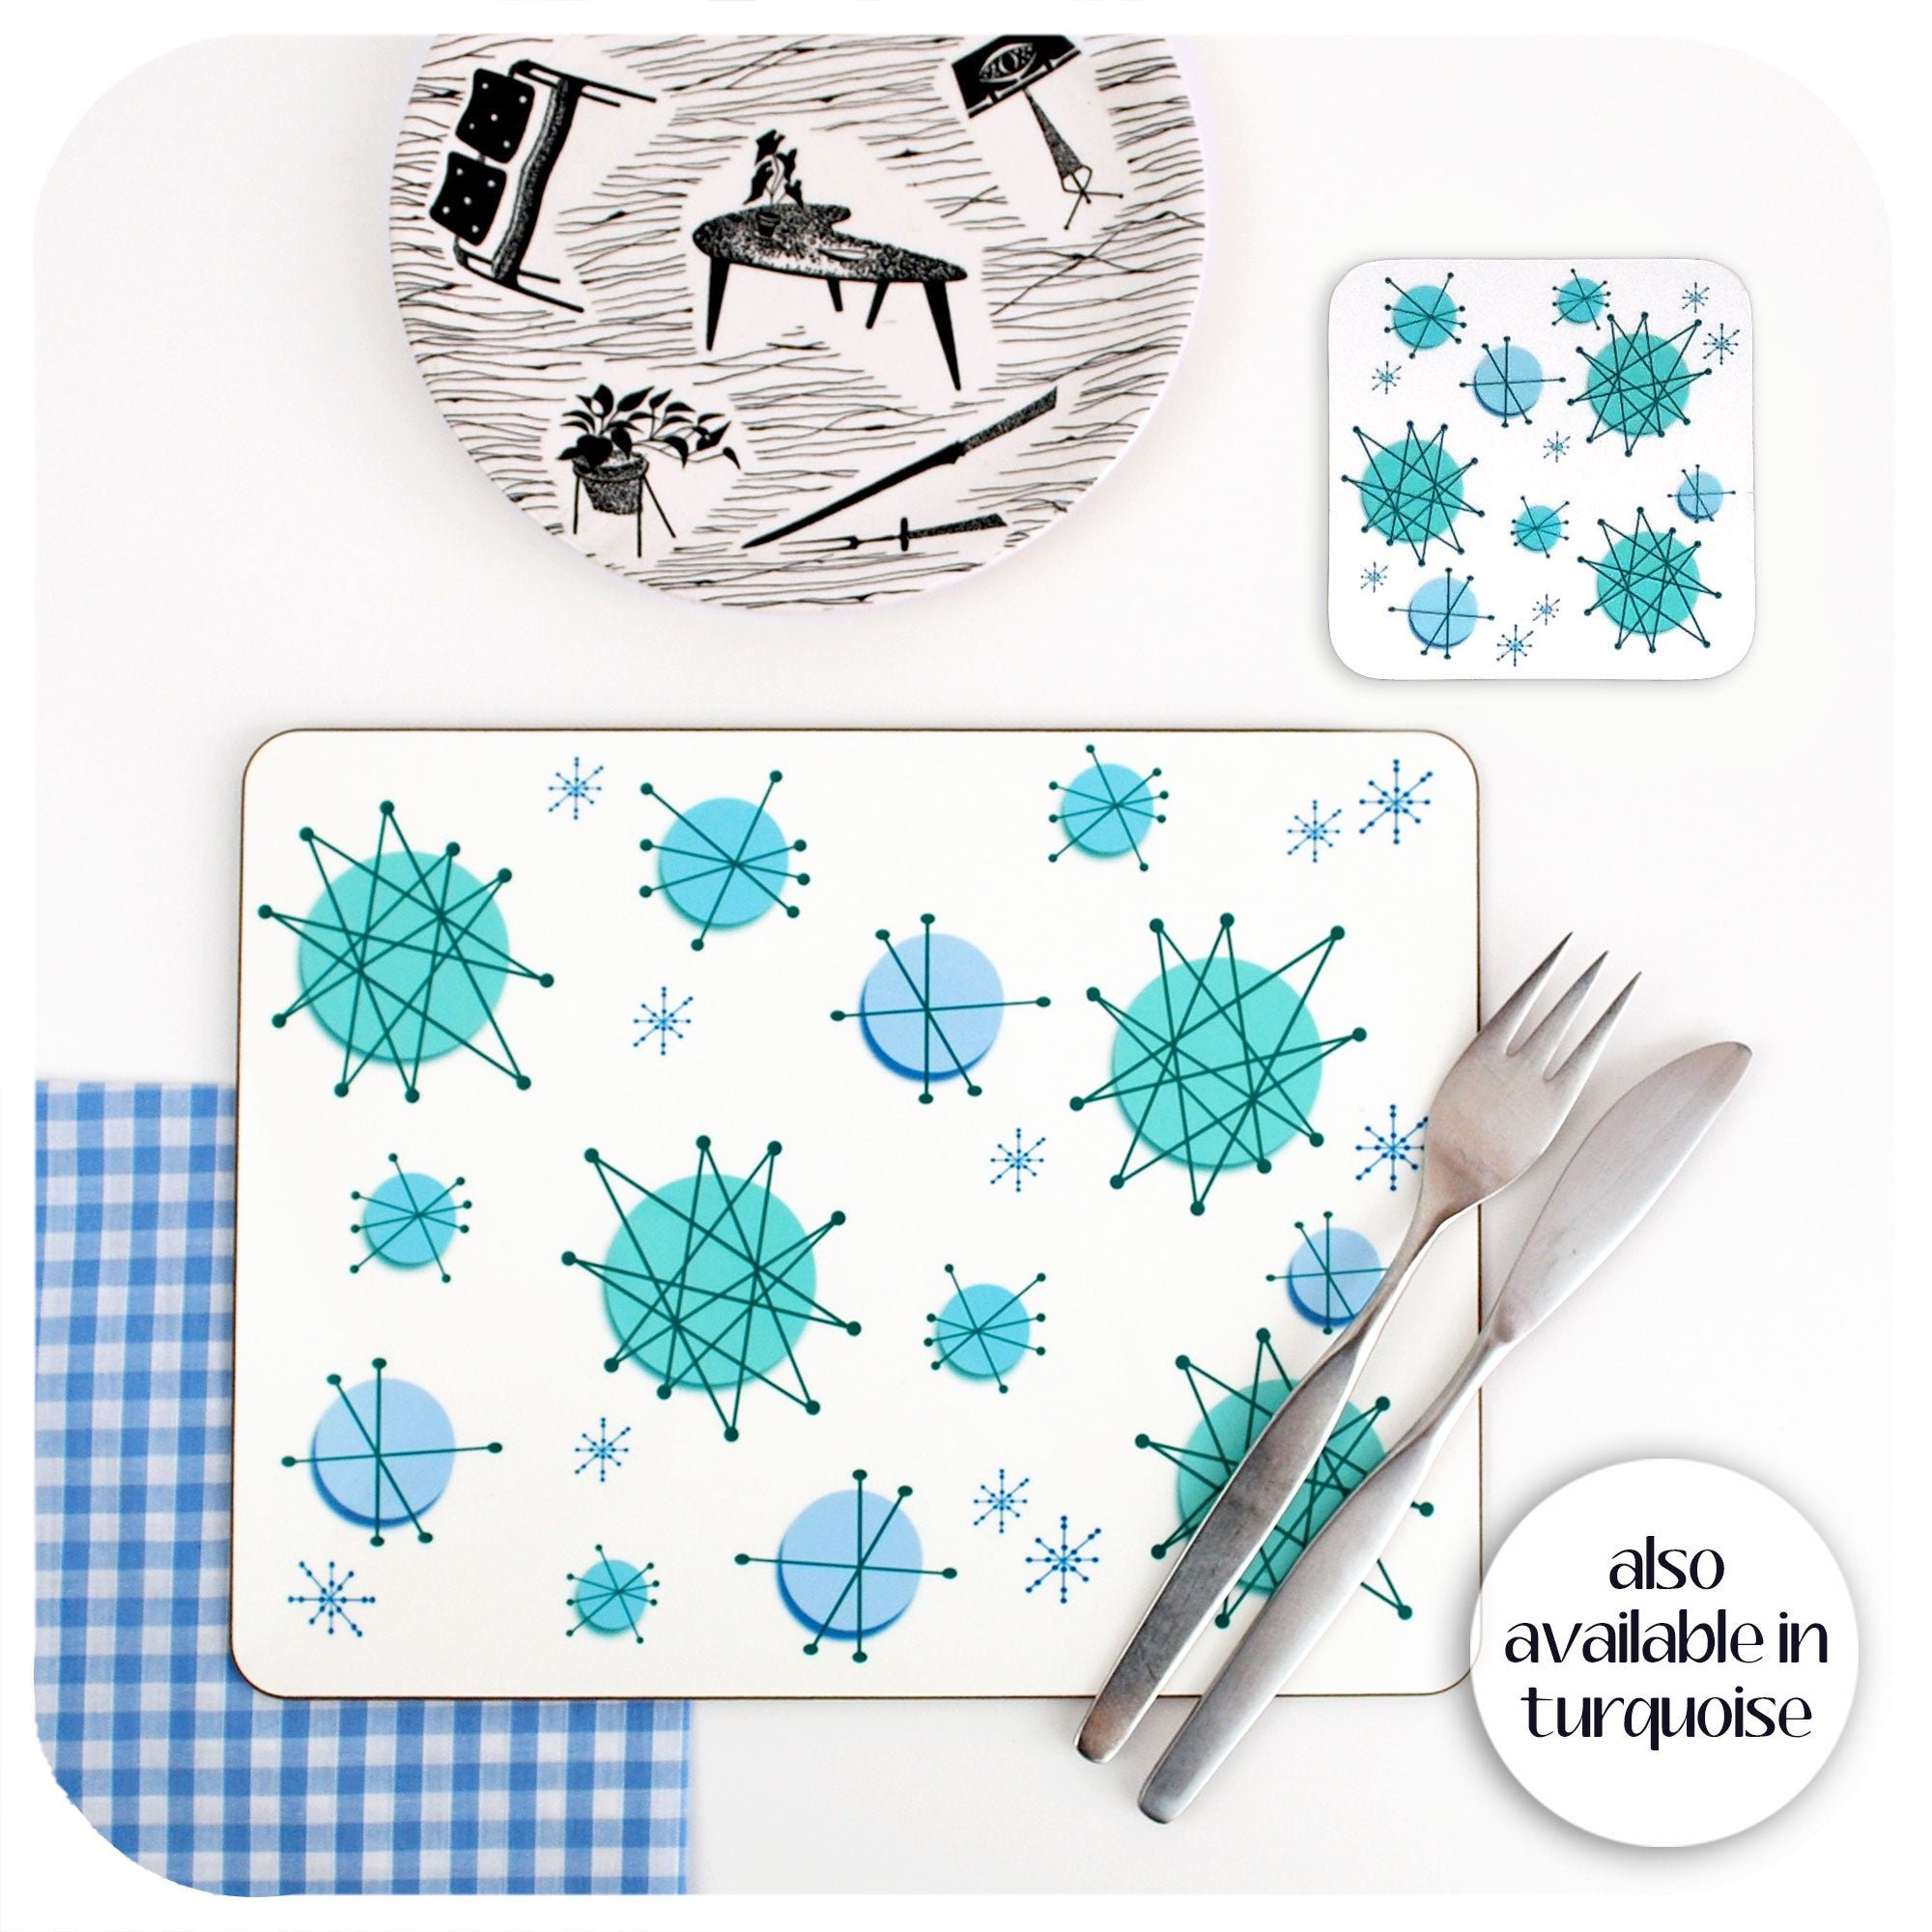 Atomic Starburst Placemat & Coaster in turquoise | The Inkabilly Emporium